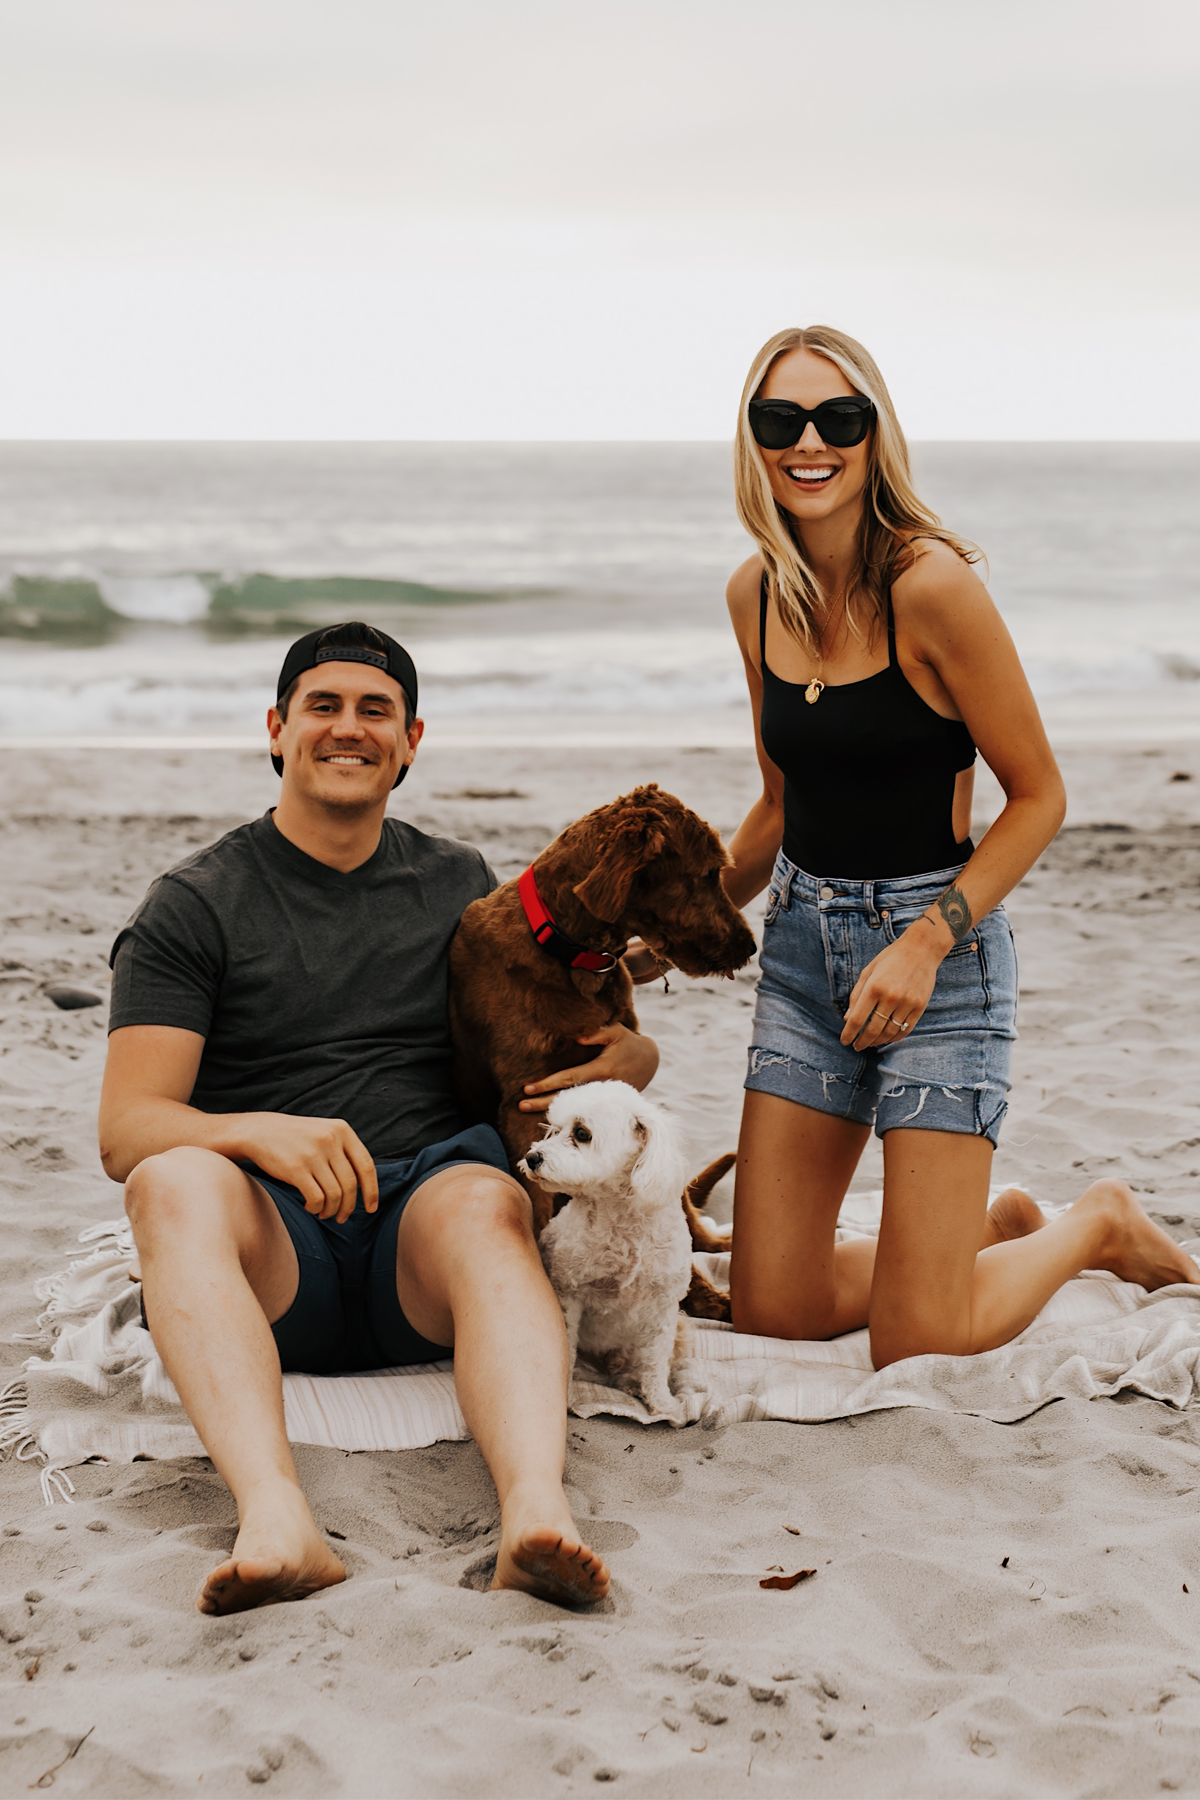 Fashion Jackson at San Diego Dog Beach with fiance Will and Dogs Wearing Summer Beach Outfits 2